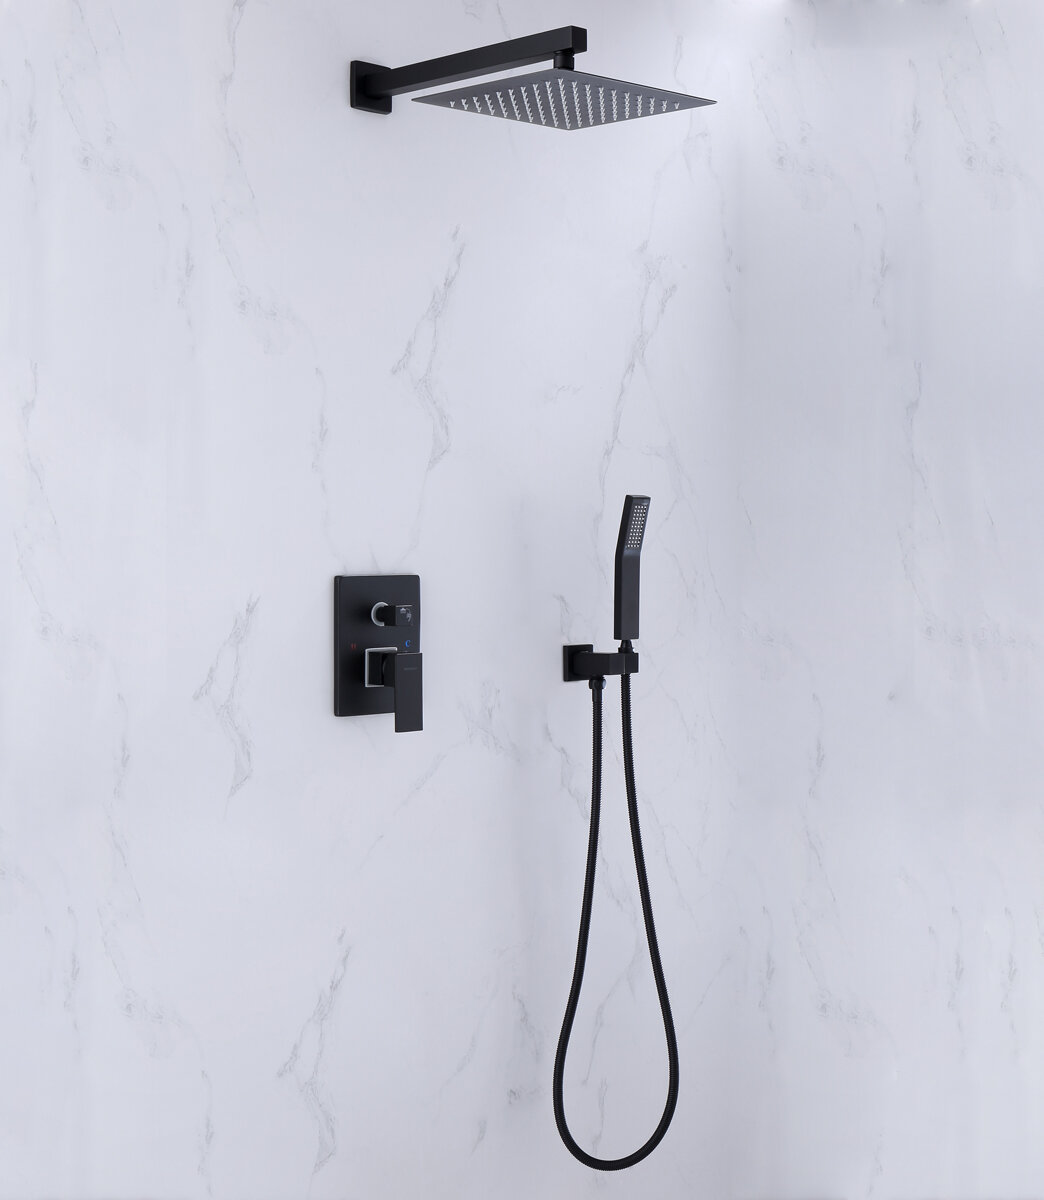 Wall Mount Bathroom Shower System Temperature Control Tub And Faucet With Rough In Valve